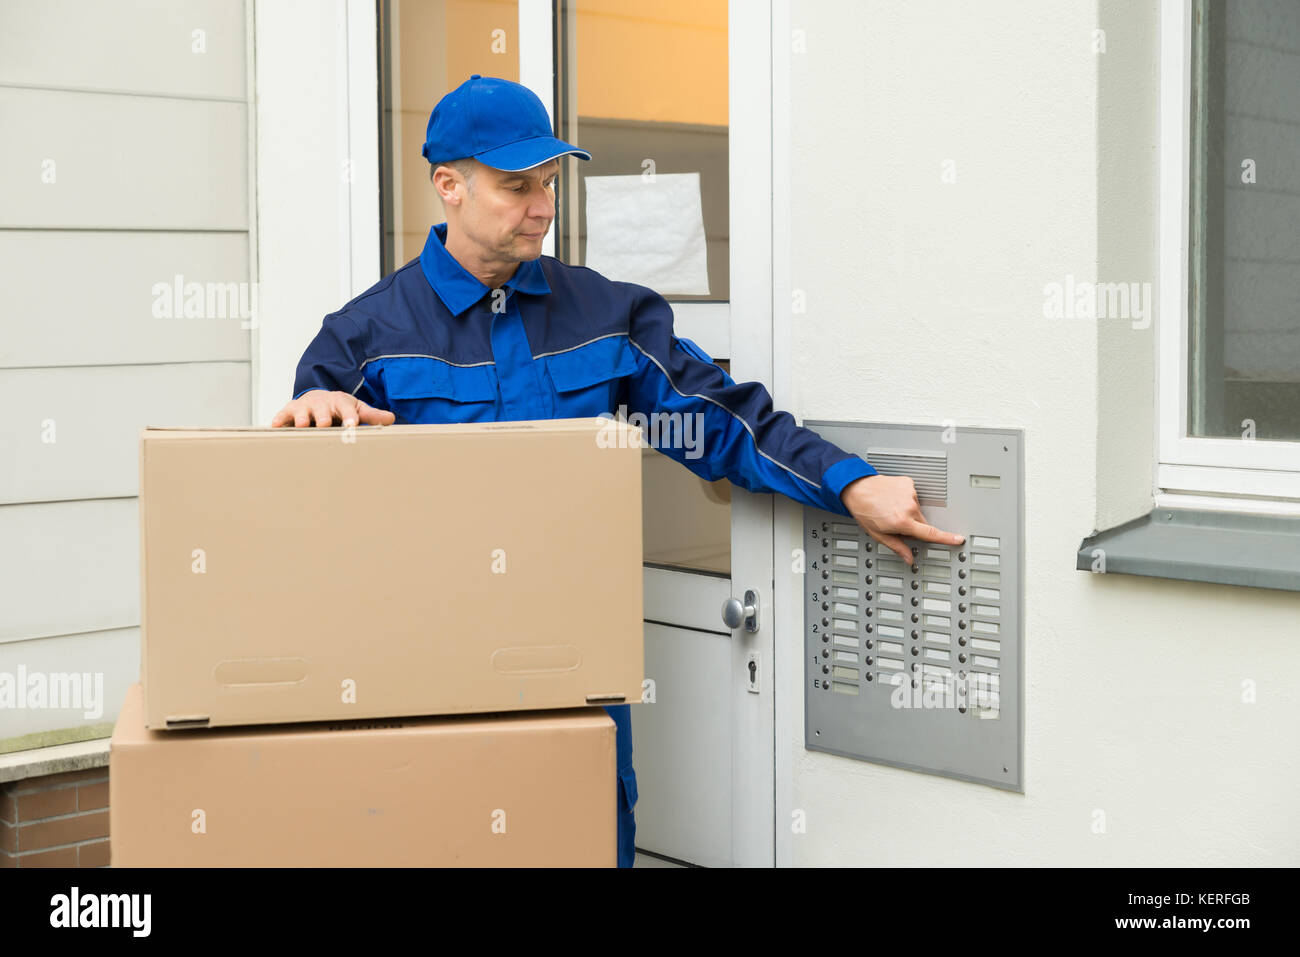 Delivery Man Using Intercom To Enter Home For Delivery - Stock Image